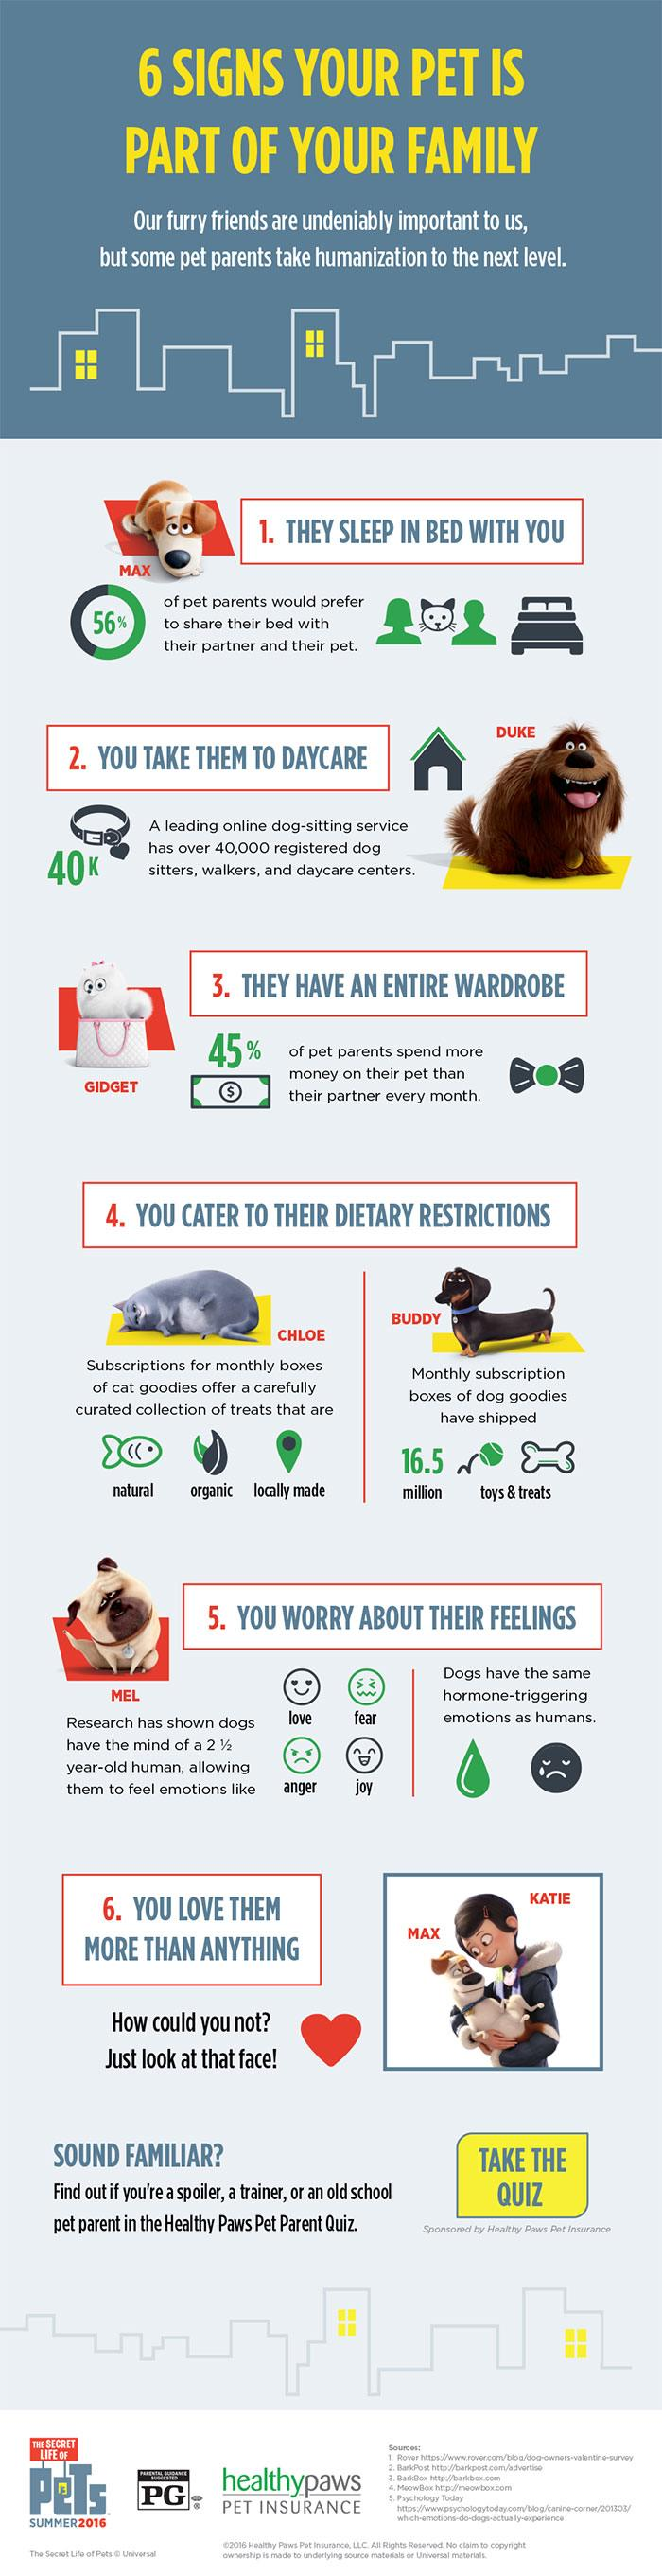 6 Signs Your Pet Is Part Of Your Family